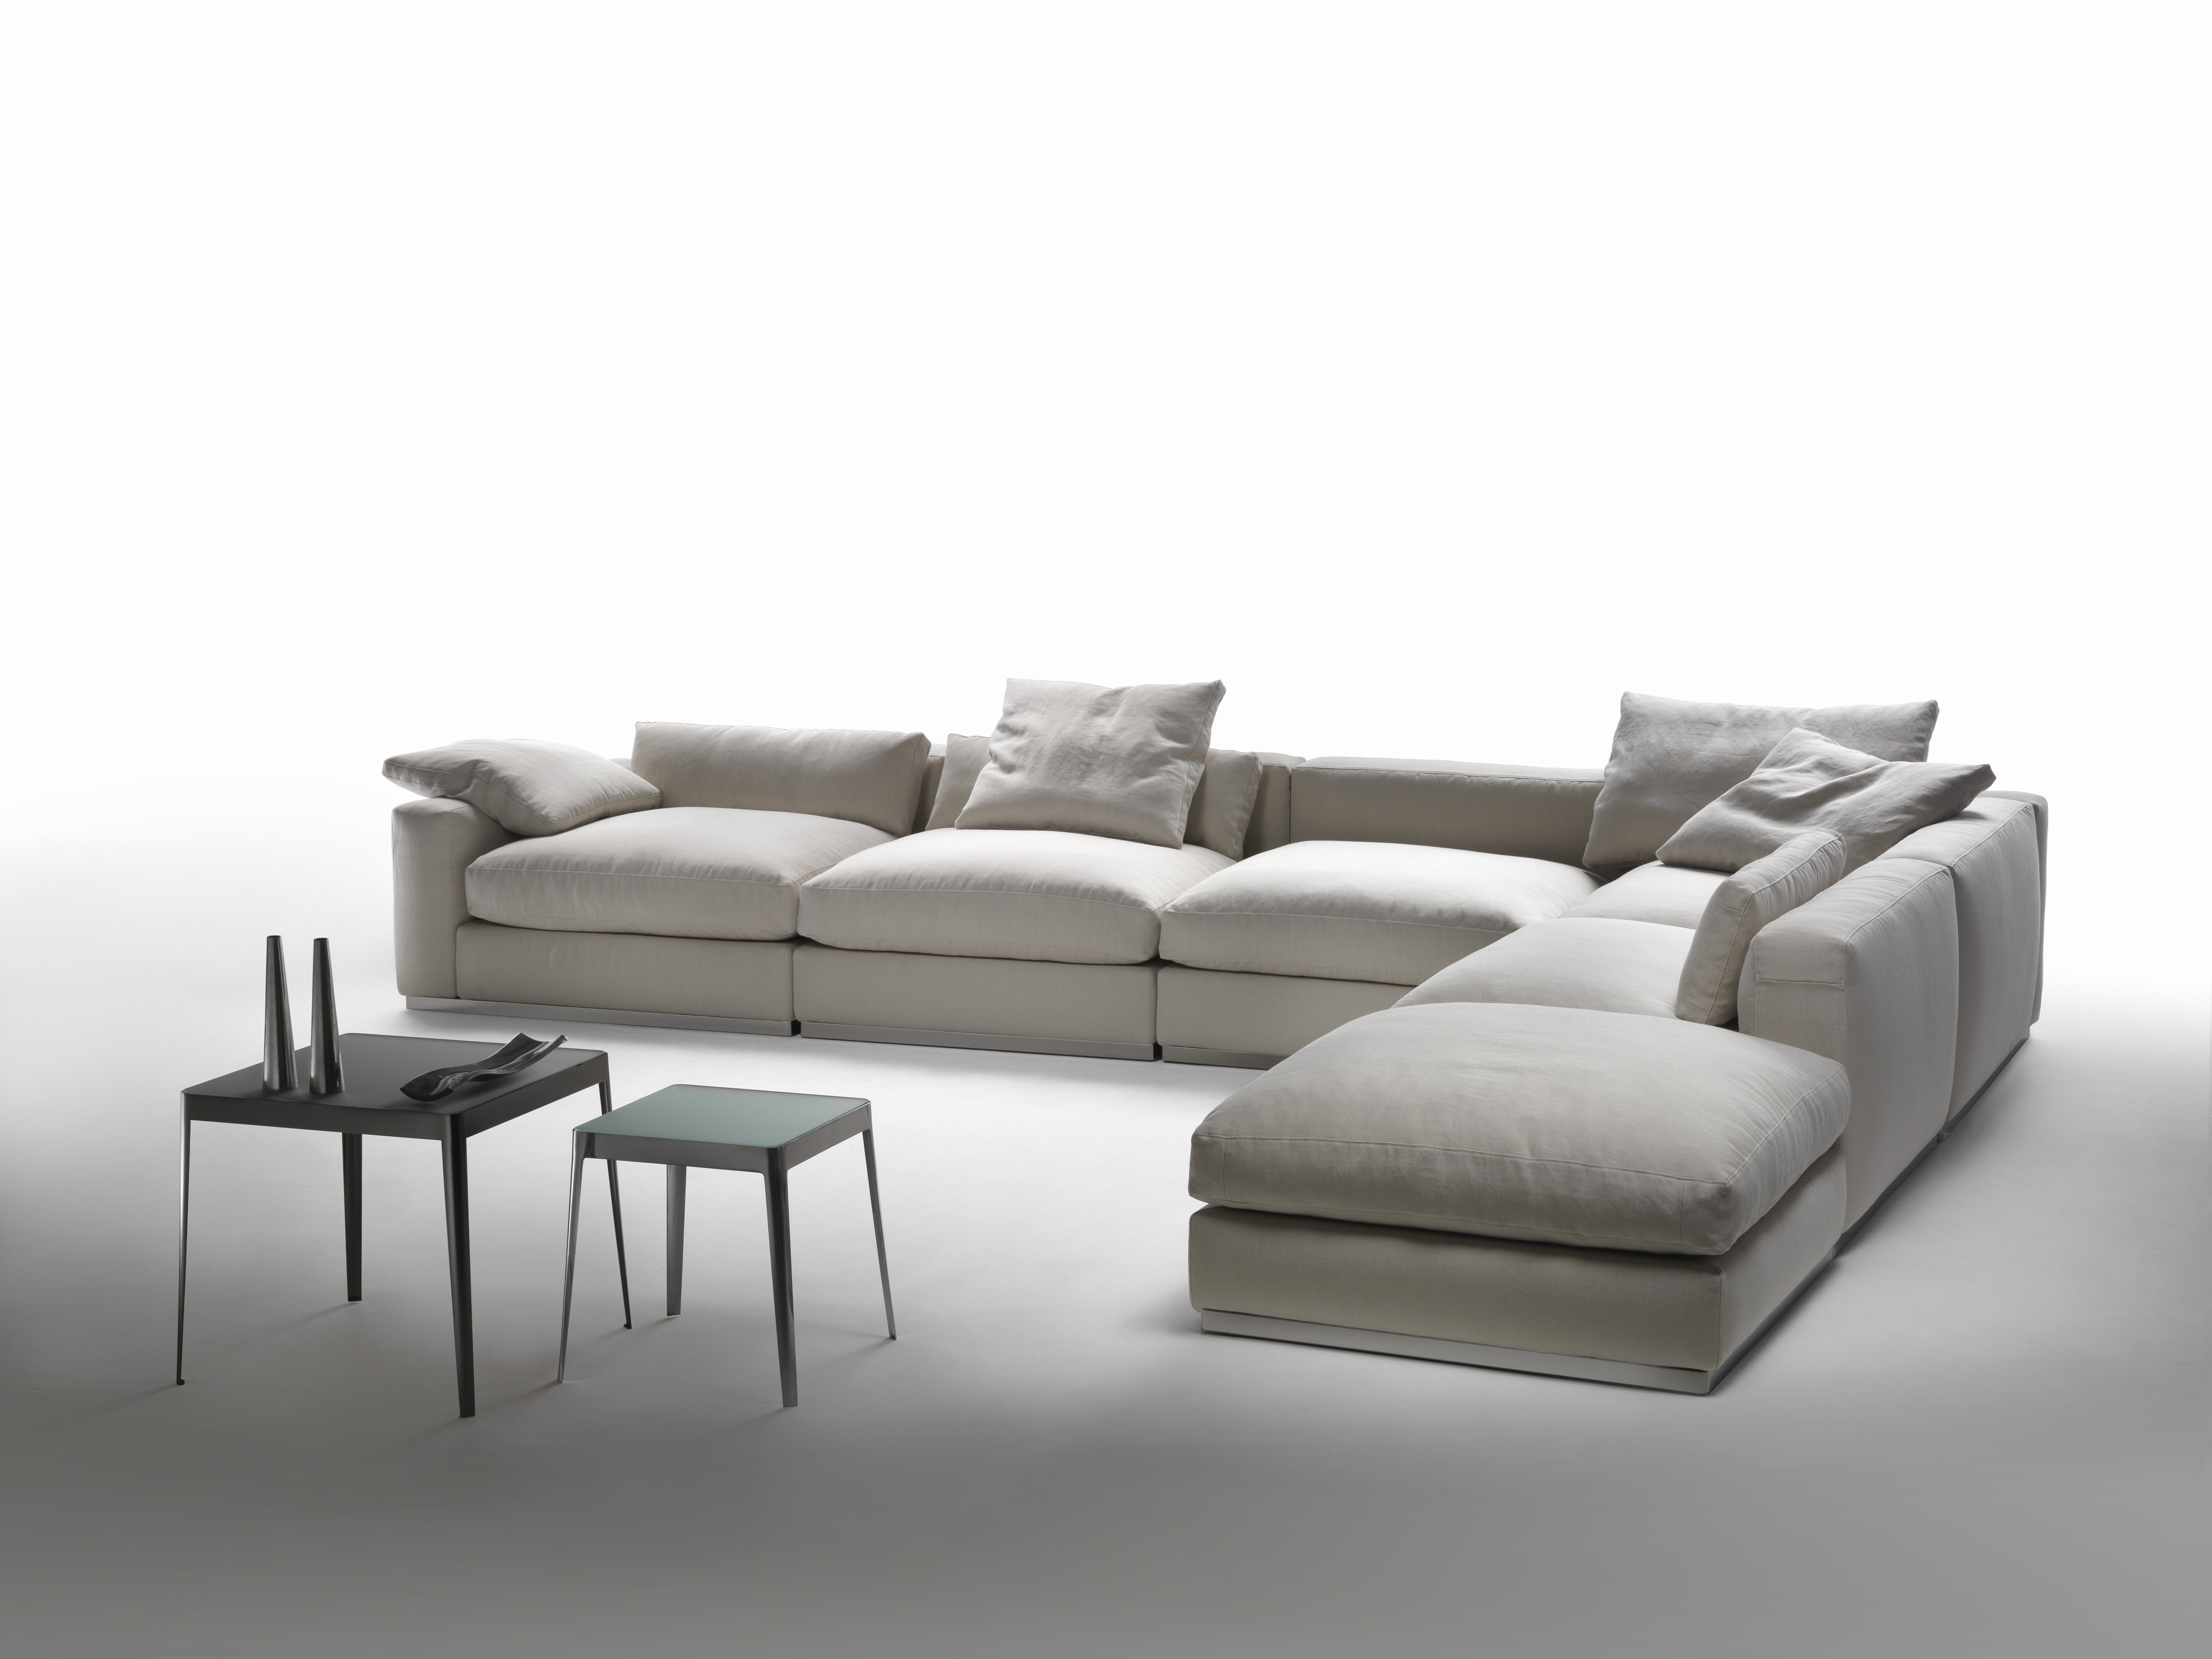 Well Liked Flexform Sofas With Low Back Sectional Sofa Com Trends With Flexform Pictures – Artenzo (View 17 of 20)